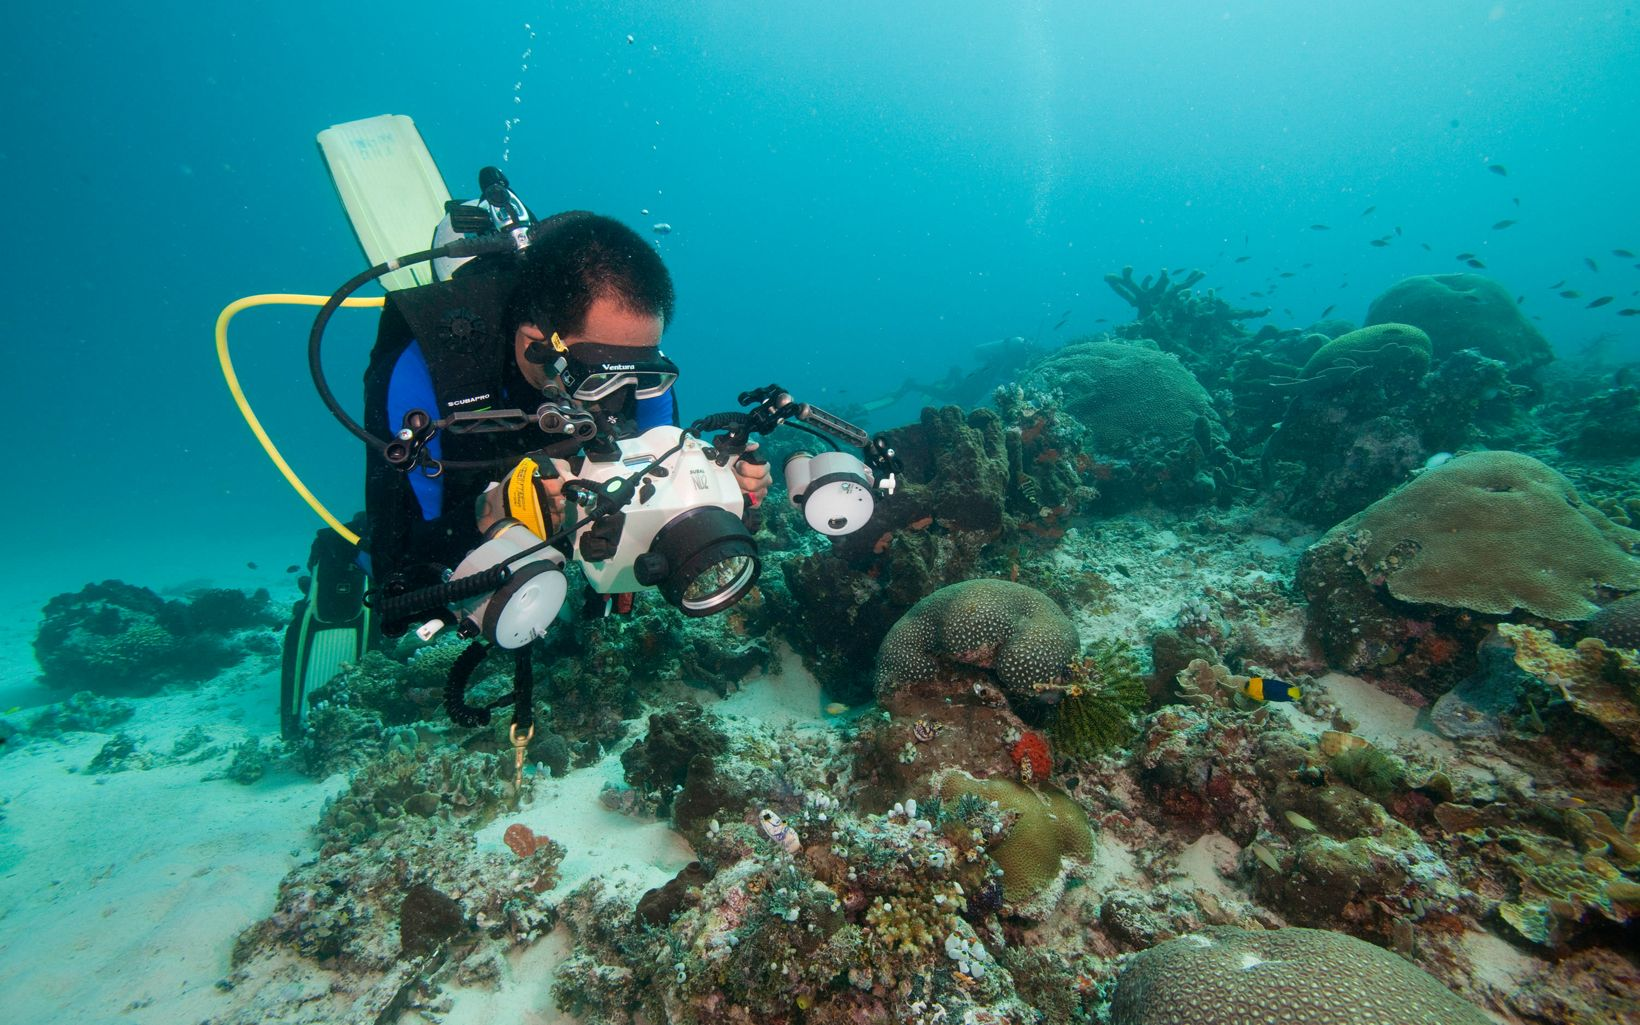 Muhajir McLauda (with TNC), photographing healthy corals and sponges in the waters off Kofiau, part of the Raja Ampat Islands of Indonesia.